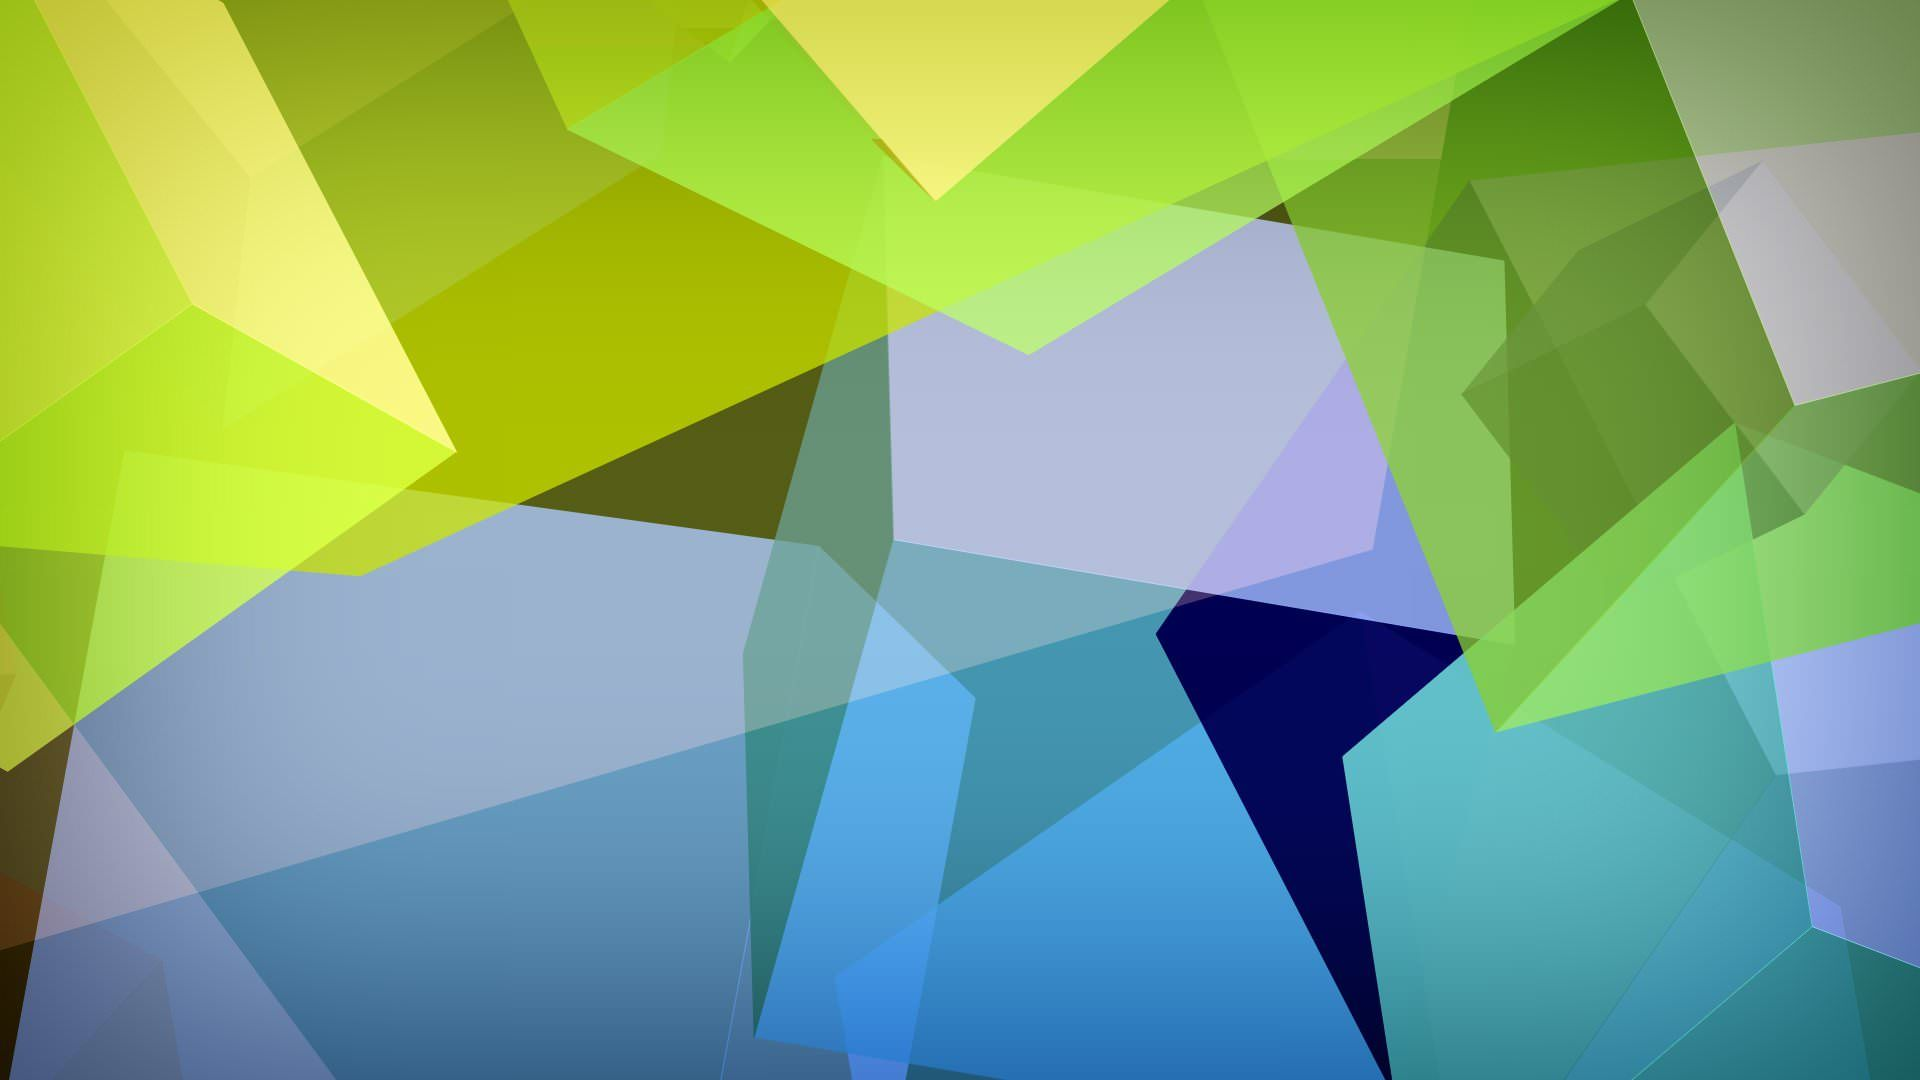 21 Geometry Wallpapers Backgrounds Images Pictures